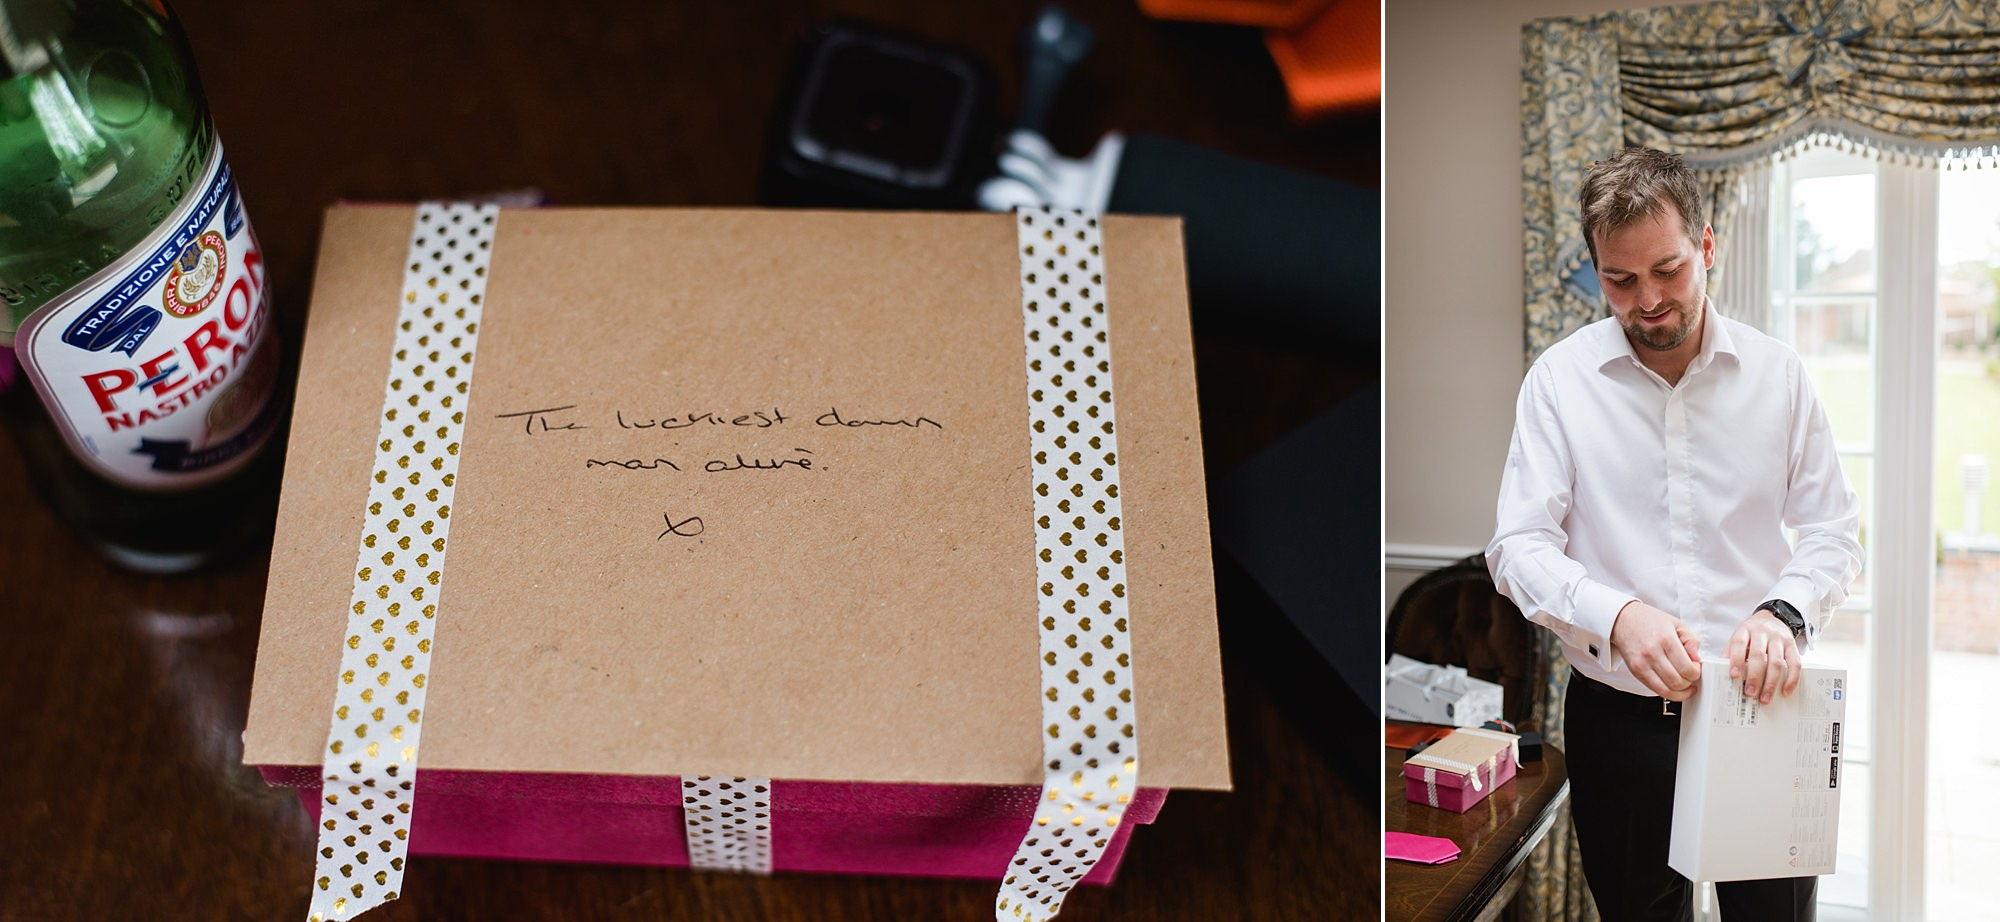 Fun London Wedding bride's gift to groom